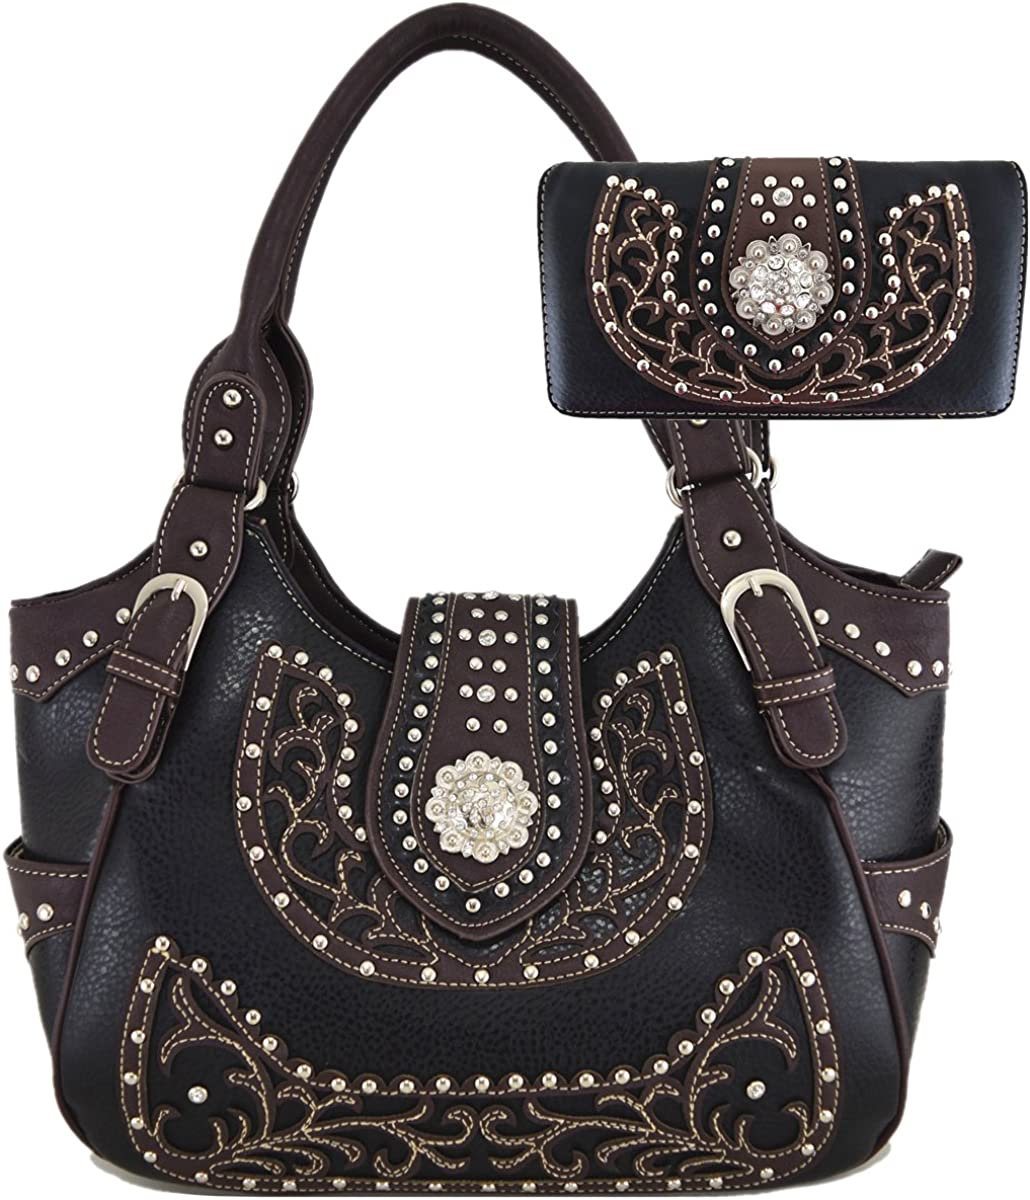 Cowgirl Retro Style Concealed Carry Shoulder Bag Hobo Totes Purse Women's Handbag Wallet Set